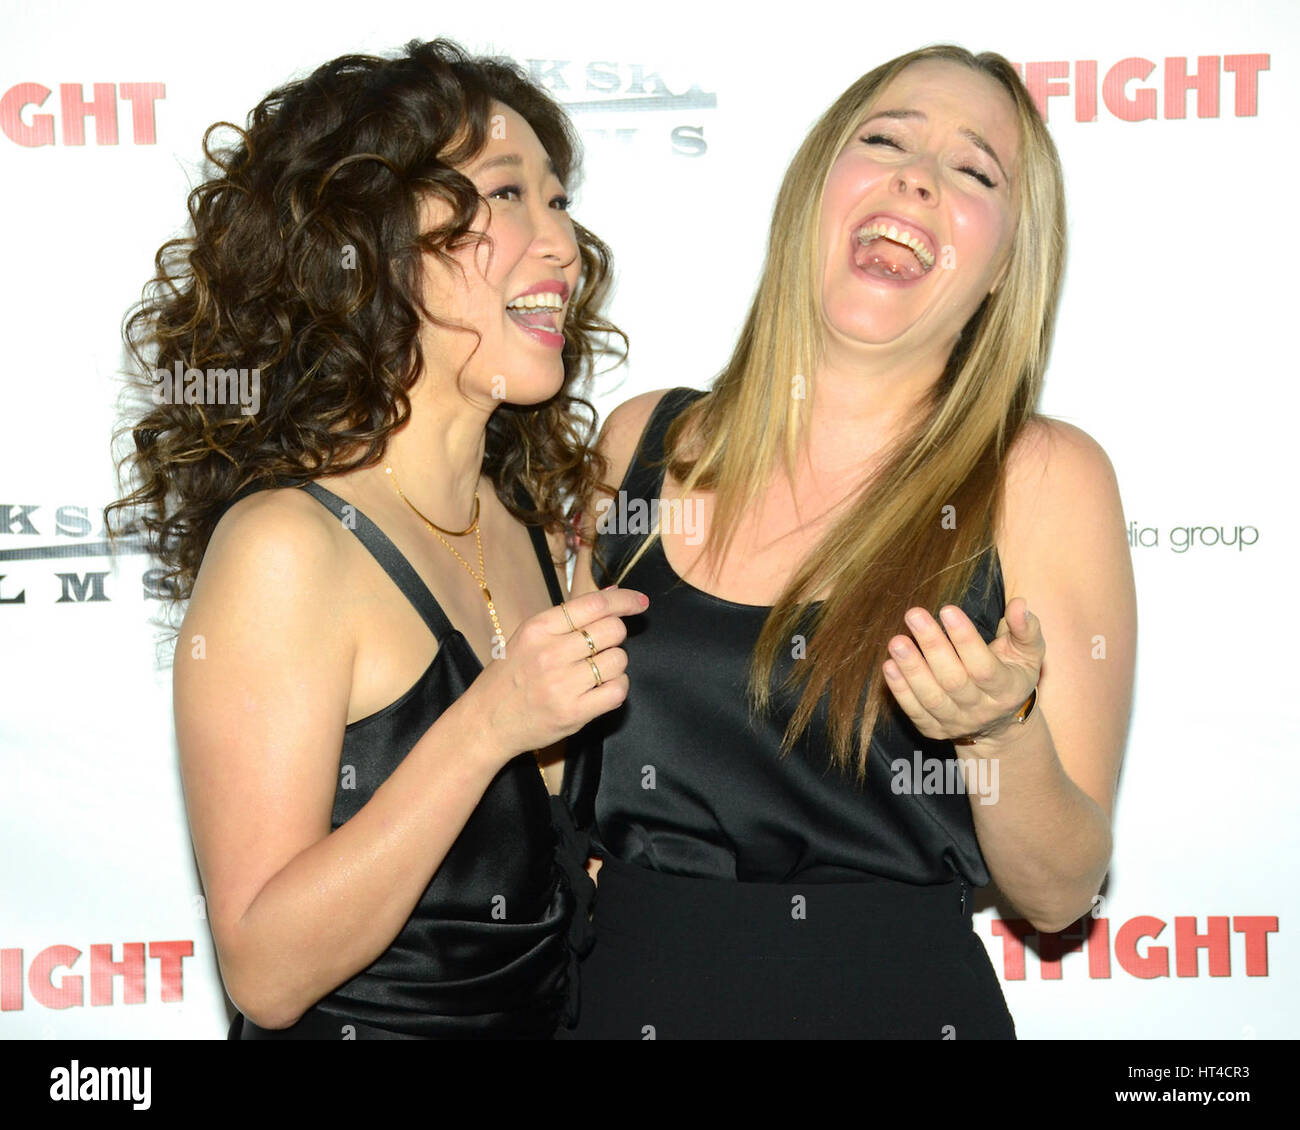 Sandra Oh and Alicia Silverstone attends the premiere of Dark Sky Films' 'Catfight' at Cinefamily on - Stock Image